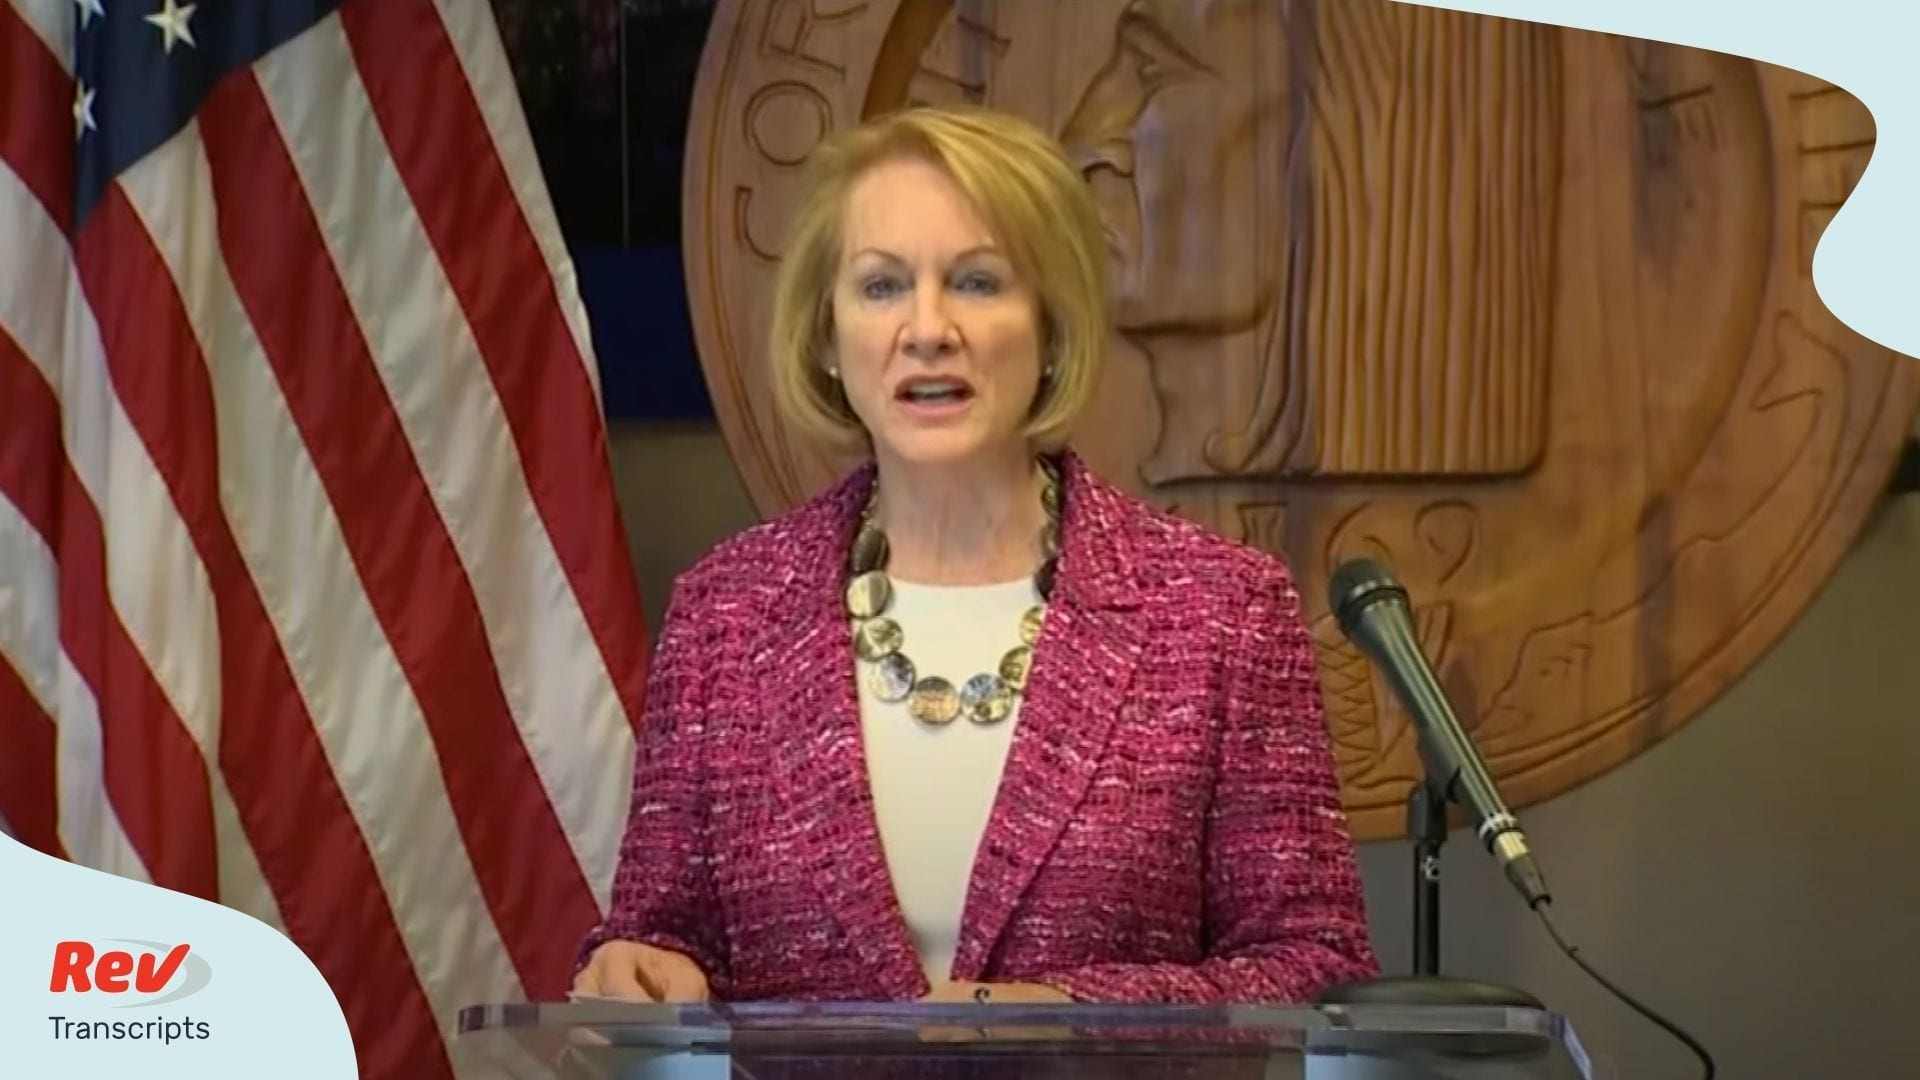 Seattle Mayor Jenny Durkan held a July 24 press conference